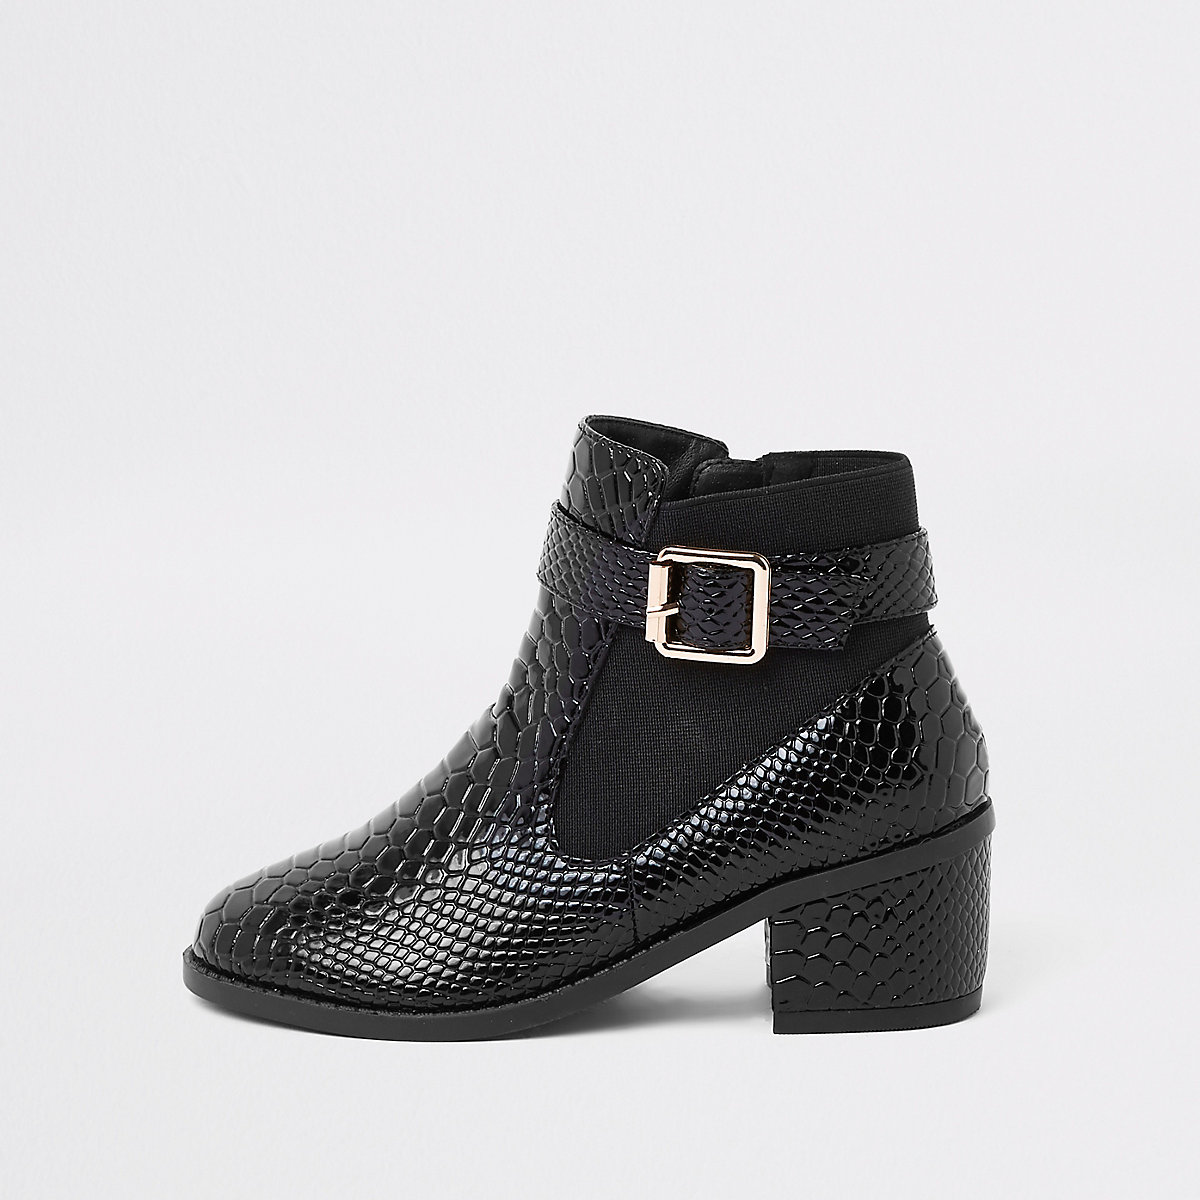 Girls black patent croc side buckle boots